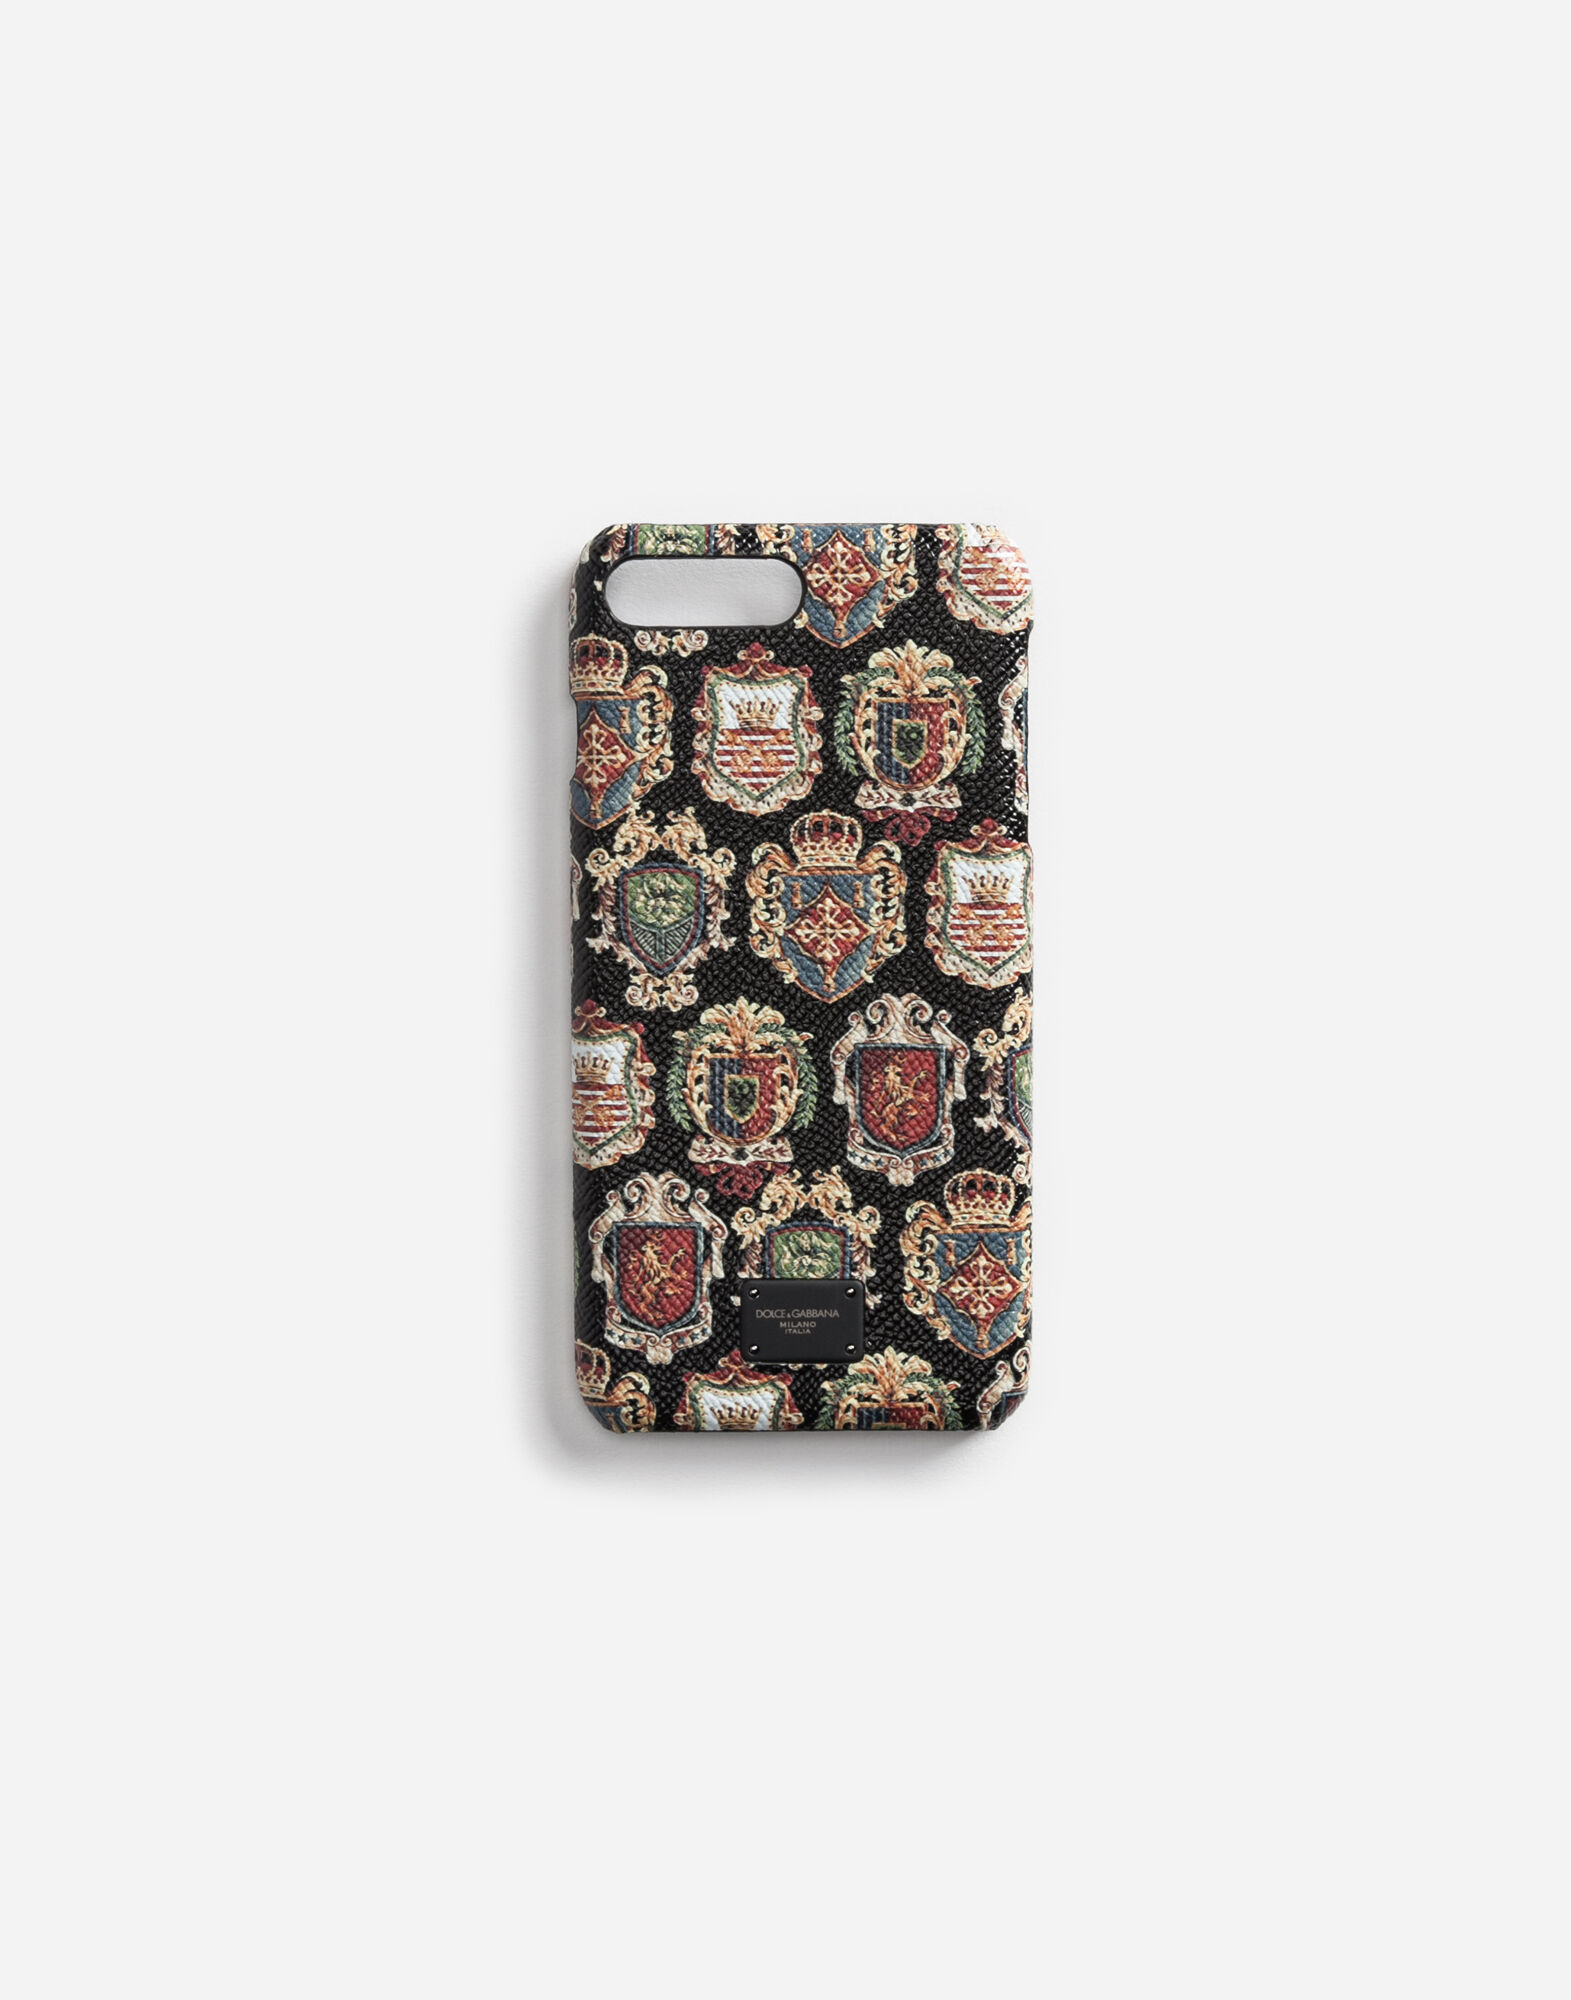 IPHONE 7 PLUS COVER IN PRINTED LEATHER